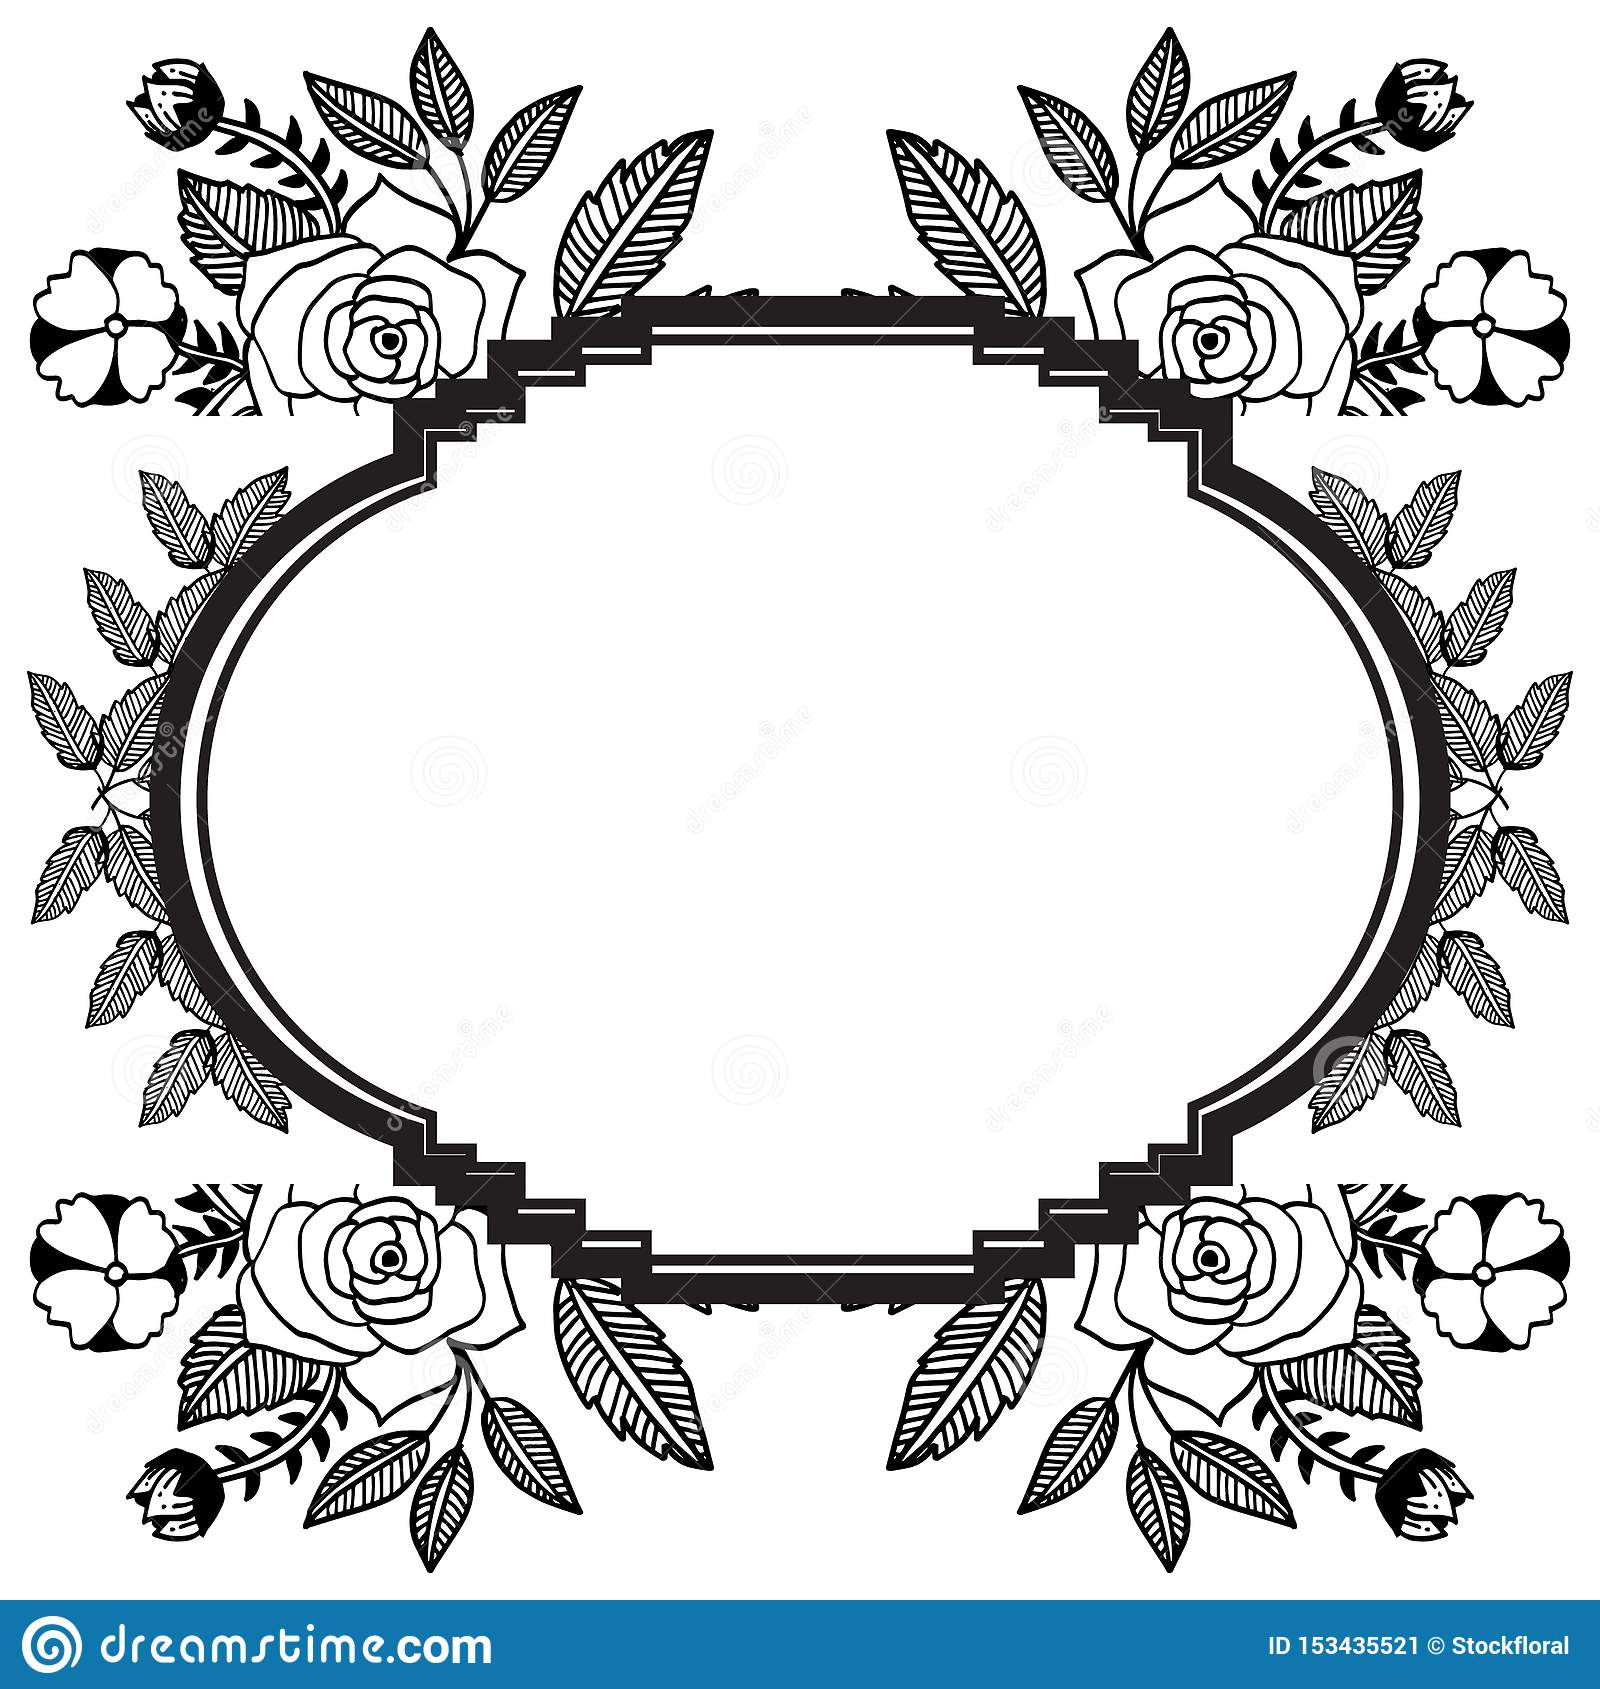 design for cards feature border of floral and leaf